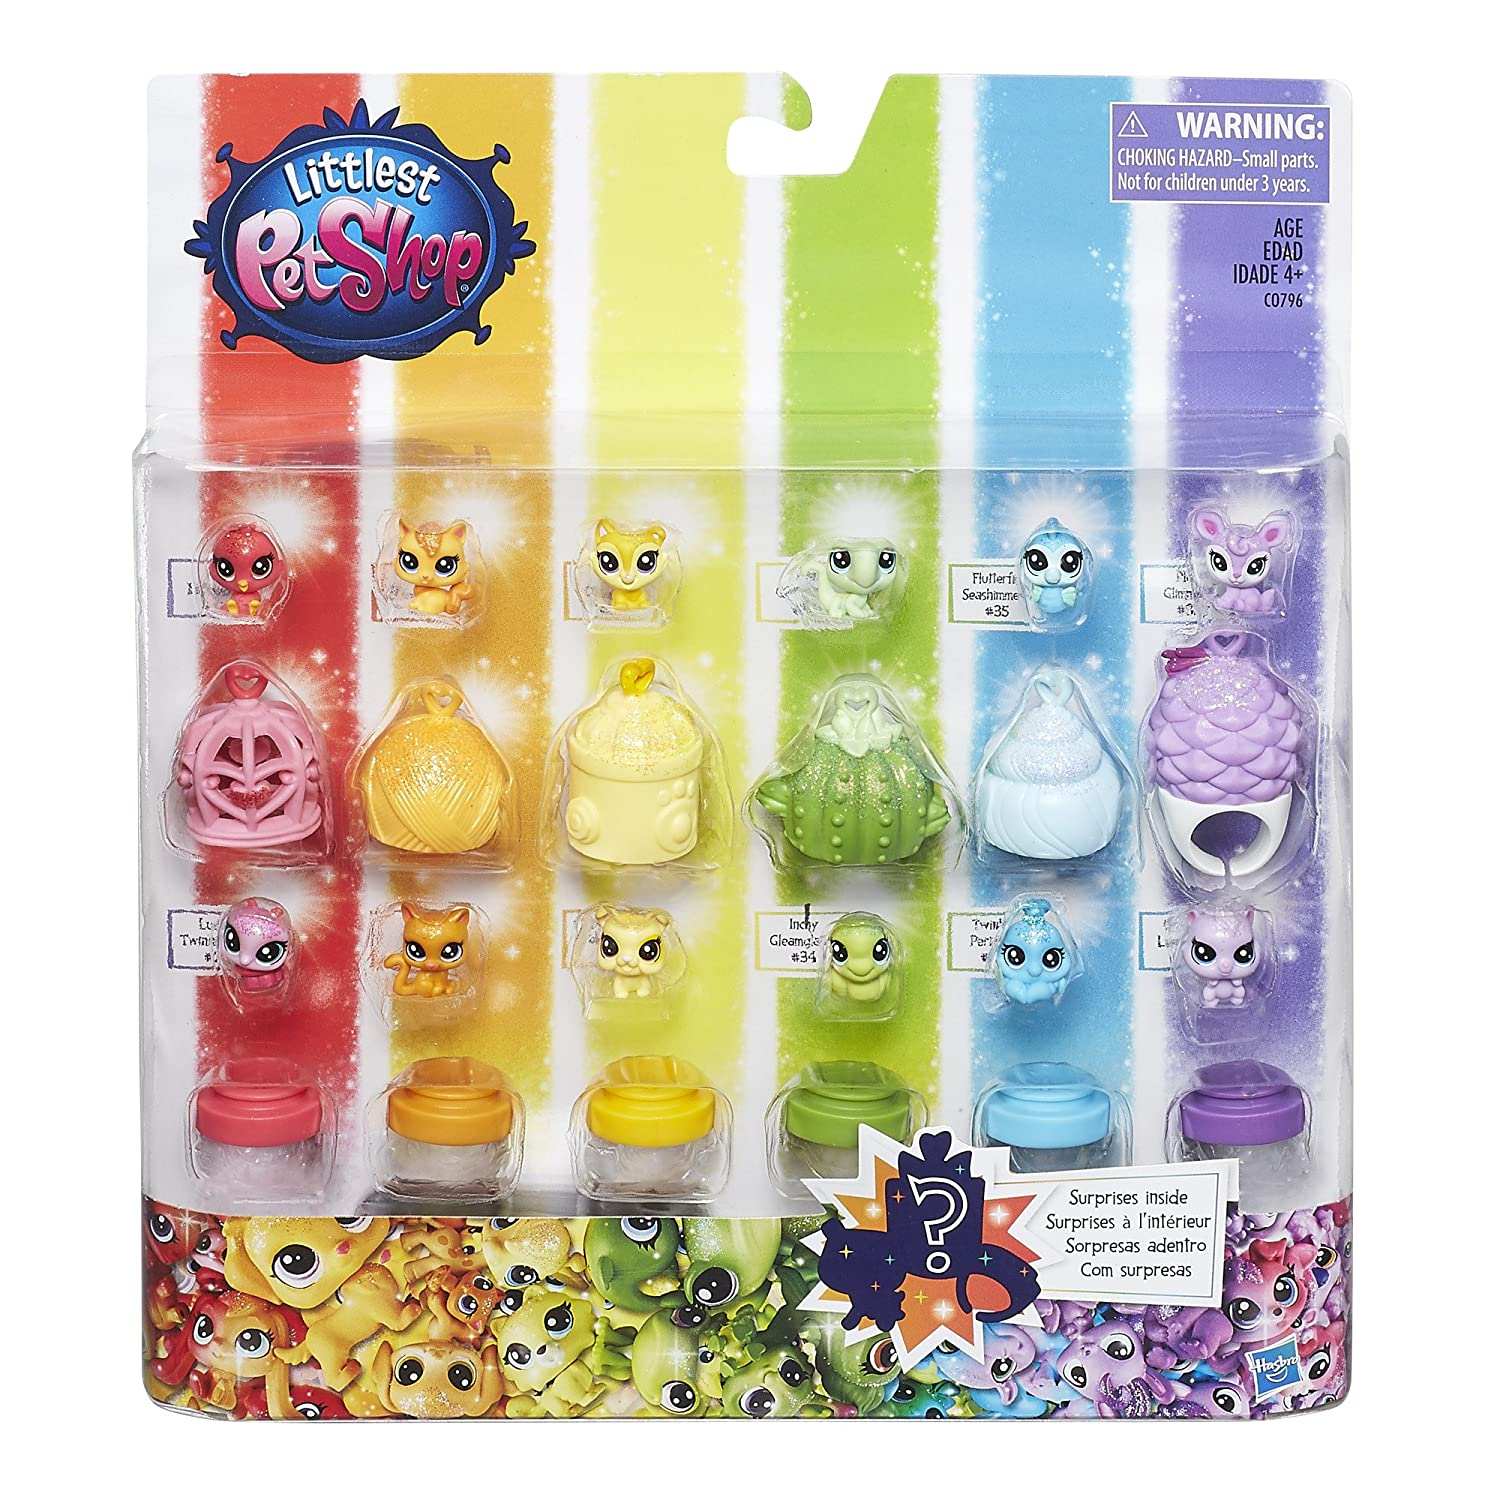 b3f8e07785d7c0 Amazon.com  Littlest Pet Shop Rainbow Friends  Toys   Games